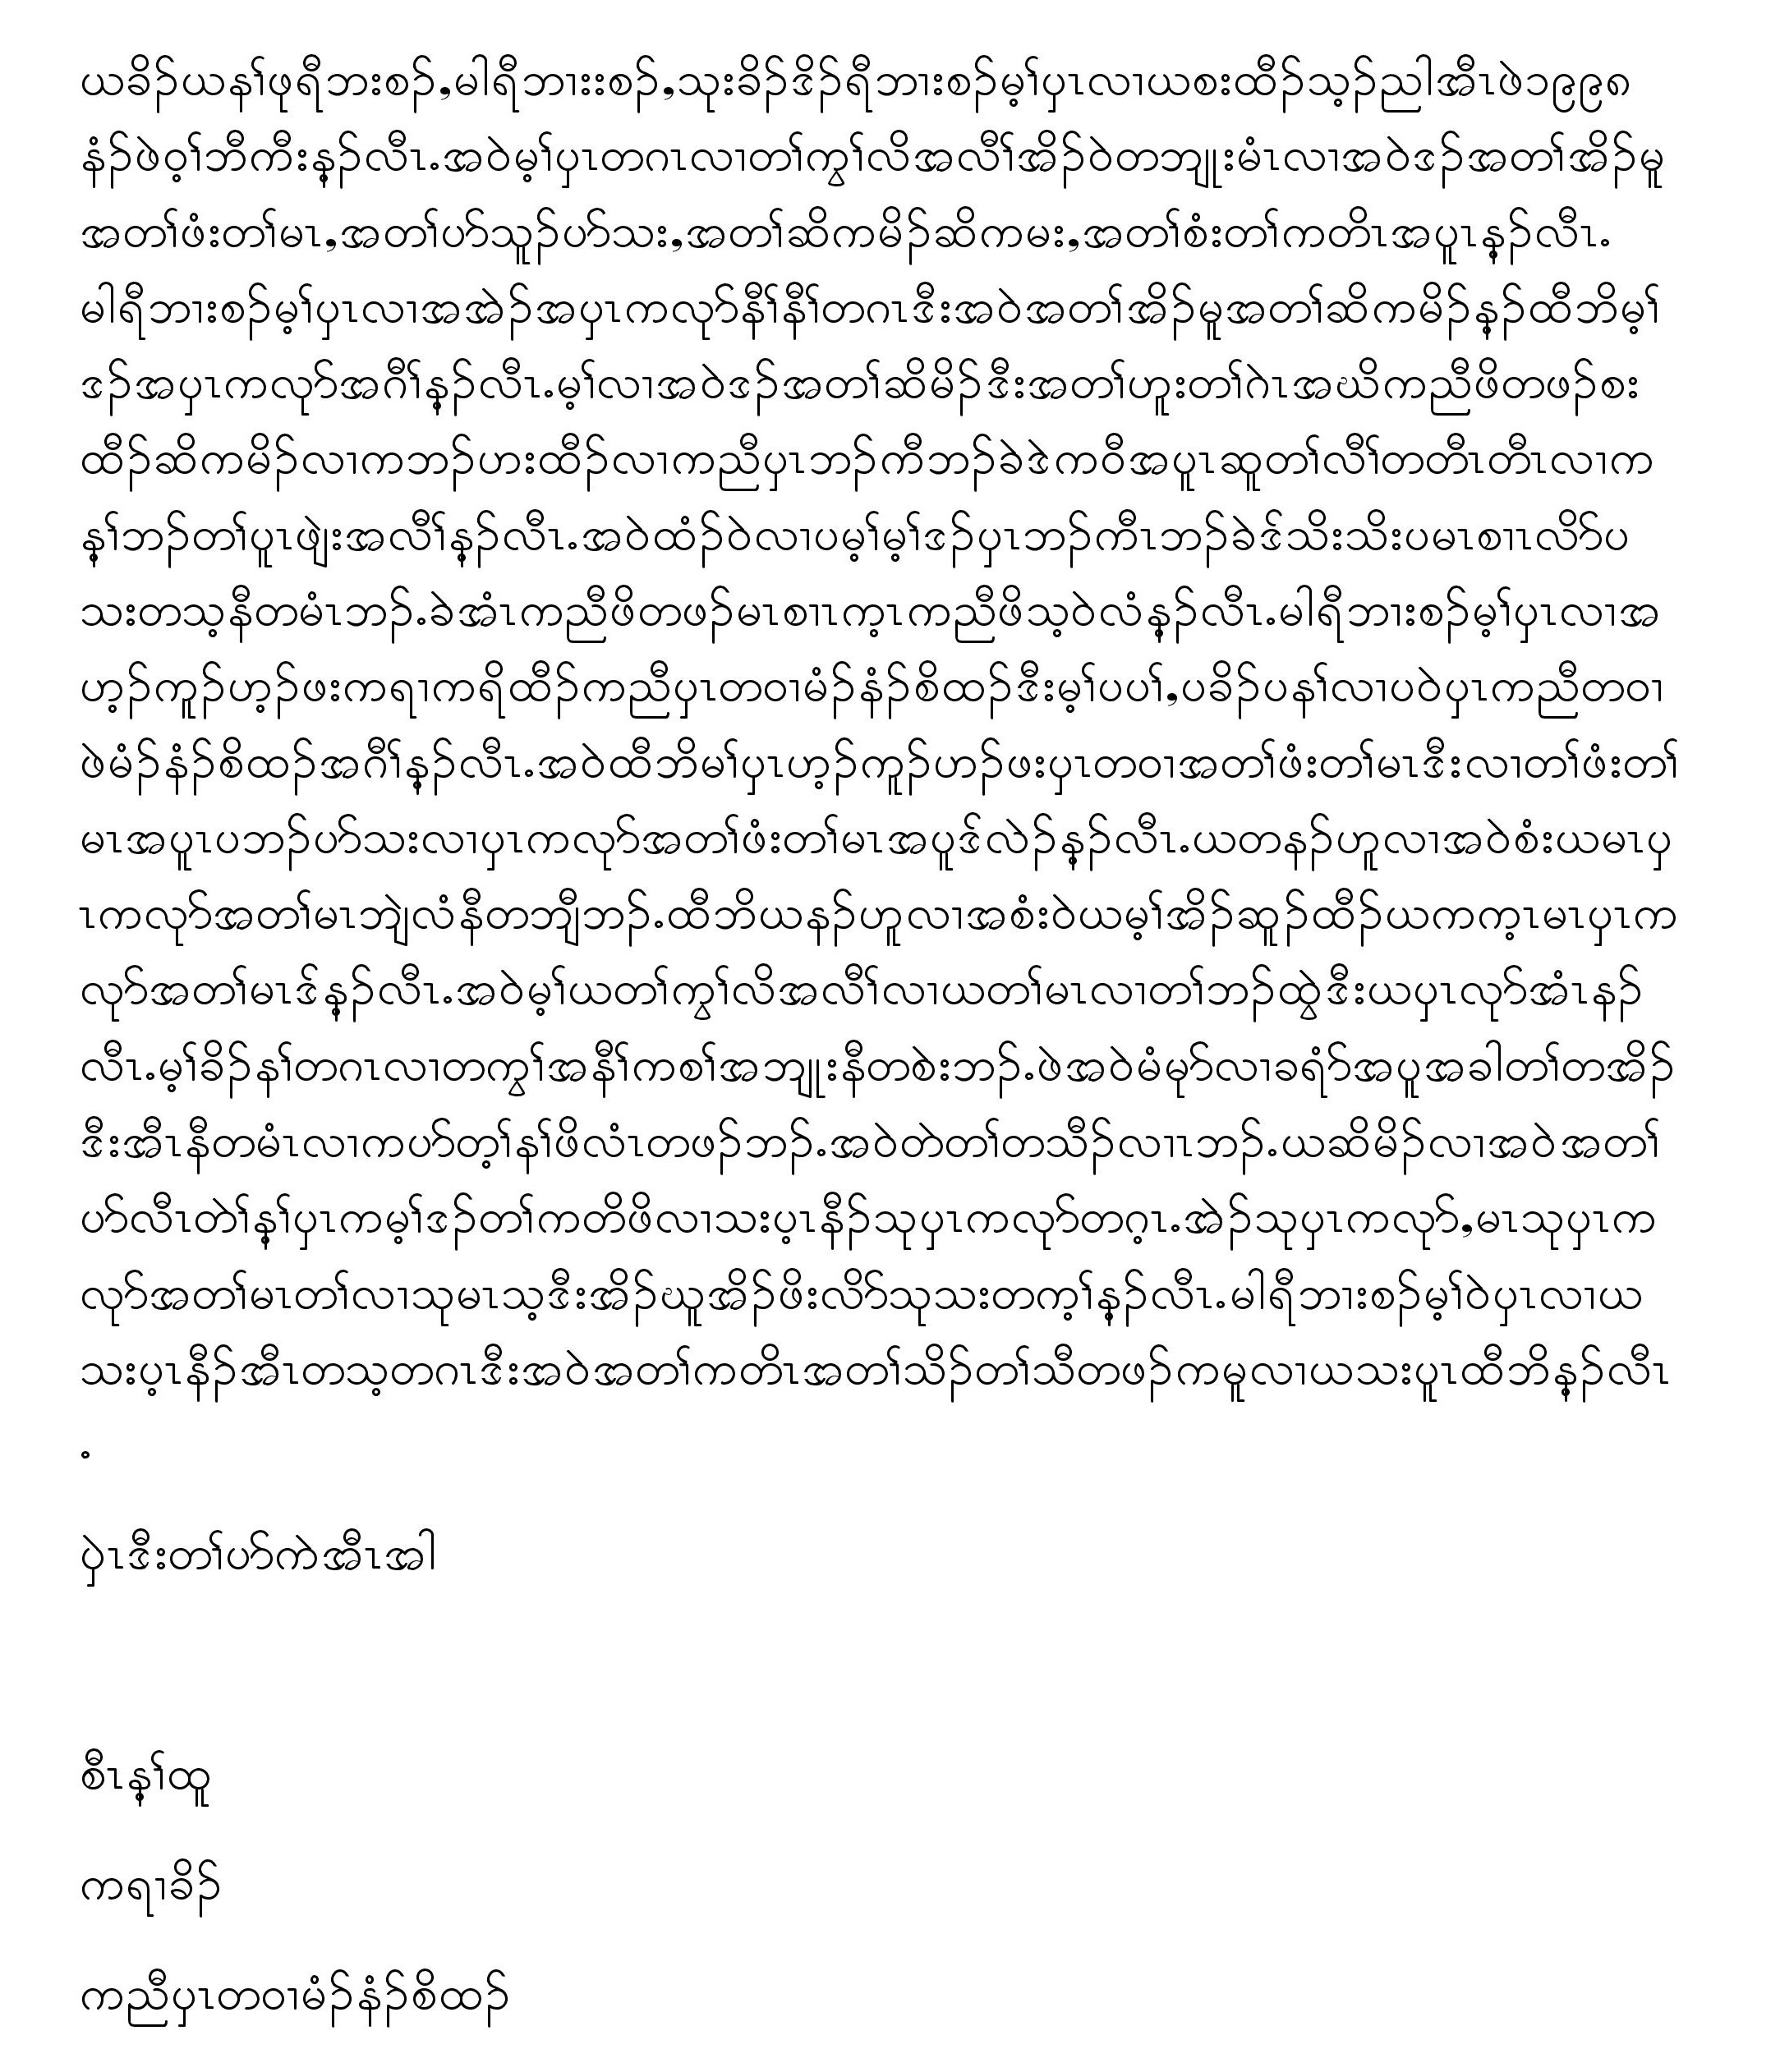 Nay Htoo's letter written in S'gaw Karen language